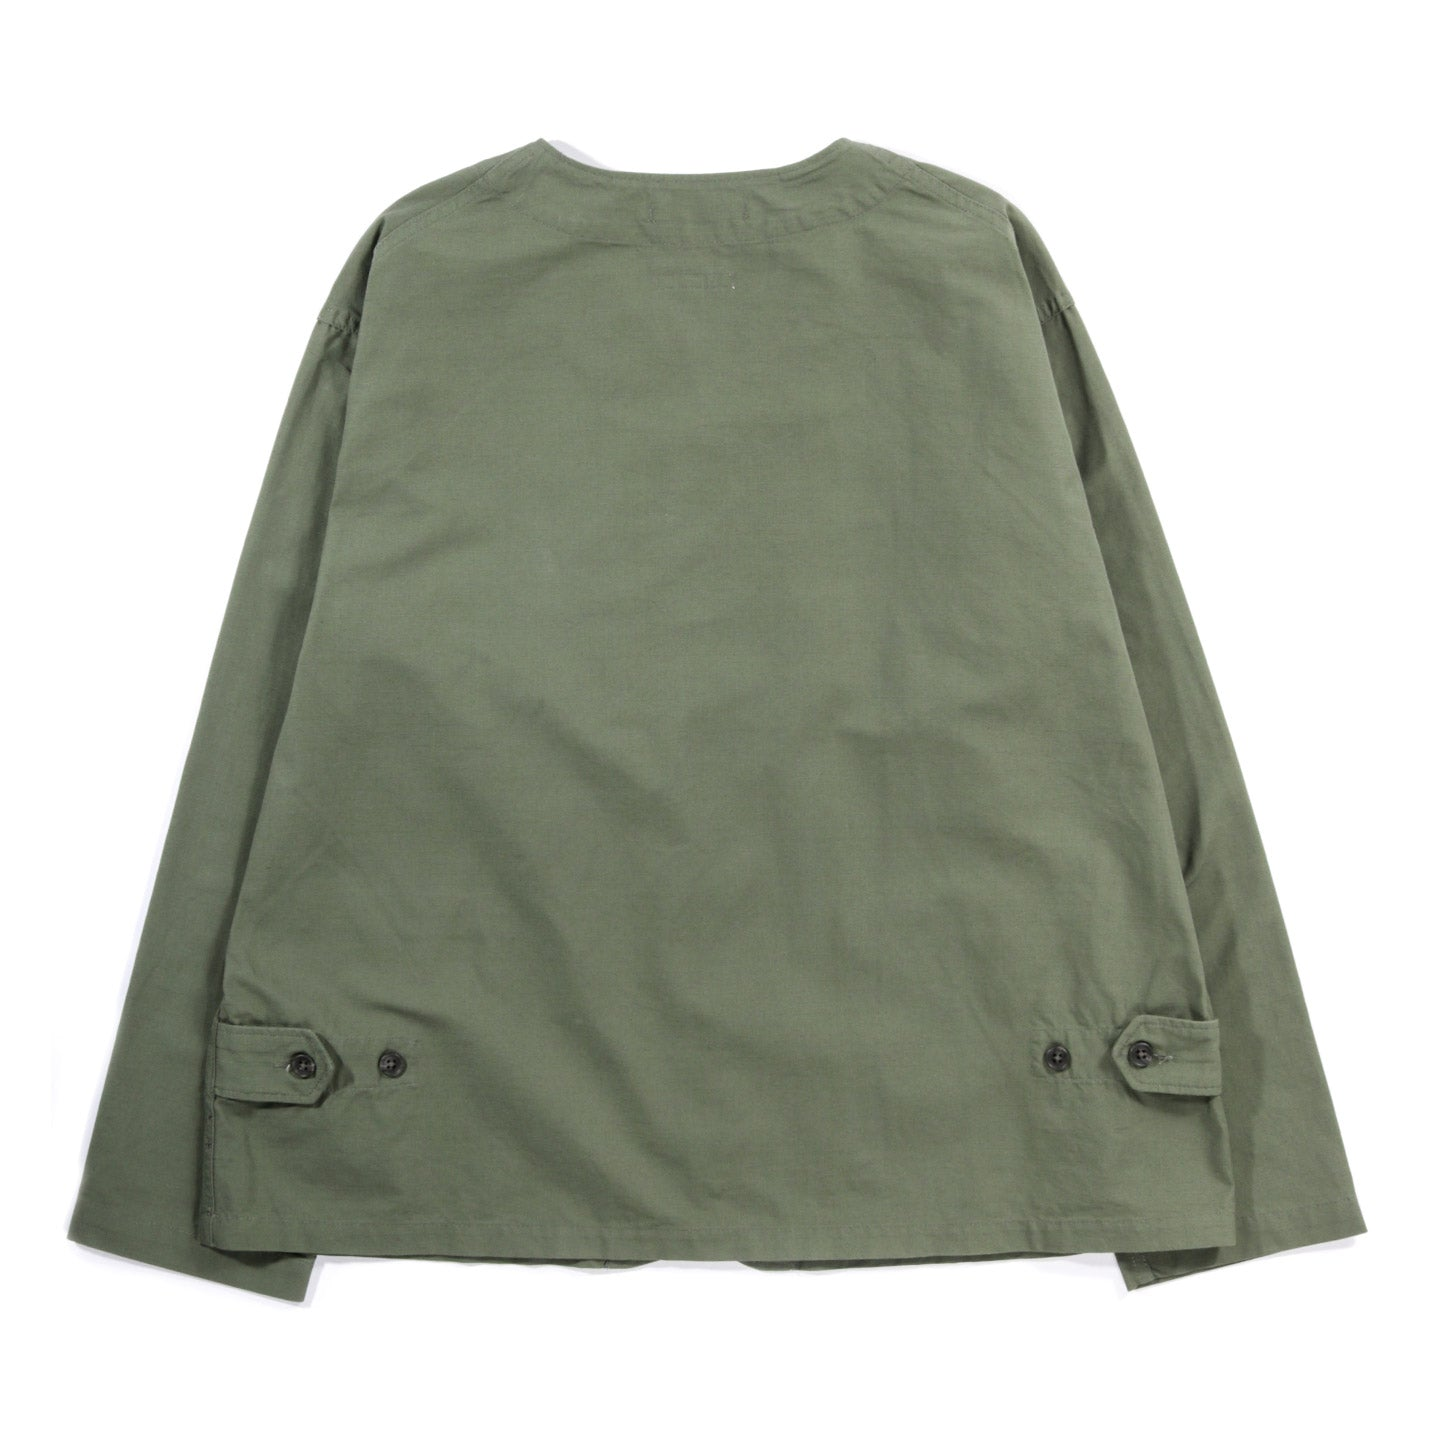 ENGINEERED GARMENTS CARDIGAN JACKET OLIVE COTTON RIPSTOP